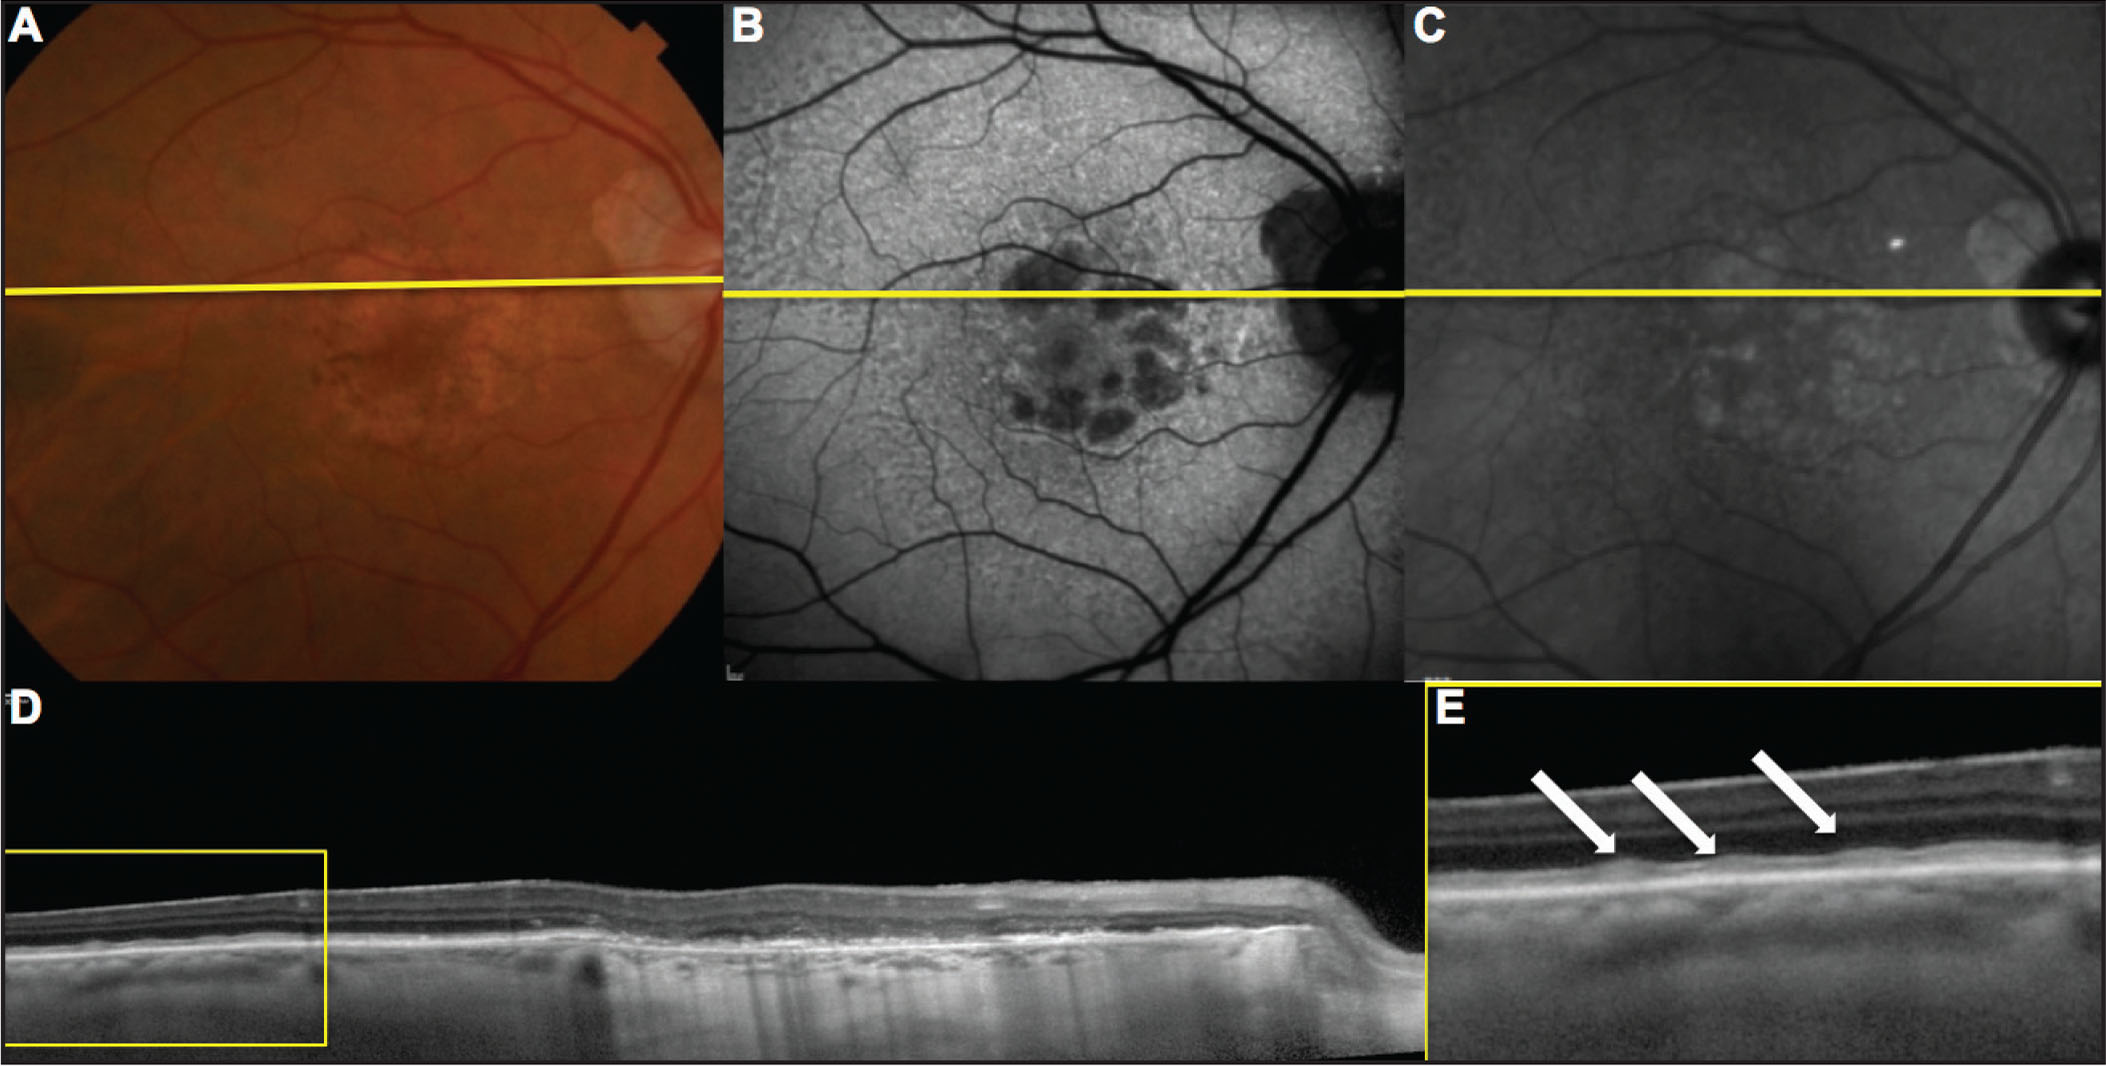 Different imaging modalities showing reticular pseudrodrusen (RPD) presentation in a 93-year-old woman with geographic atrophy (GA). (A) Color fundus image. (B) Fundus autofluorescence image. (C) Infrared reflectance image. (D) Spectral-domain (SD) OCT horizontal B-scan. (E) Magnified SD-OCT horizontal B-scan showing RPD (white arrows). The yellow line in A, B, and C represents the scanned area on SD-OCT.